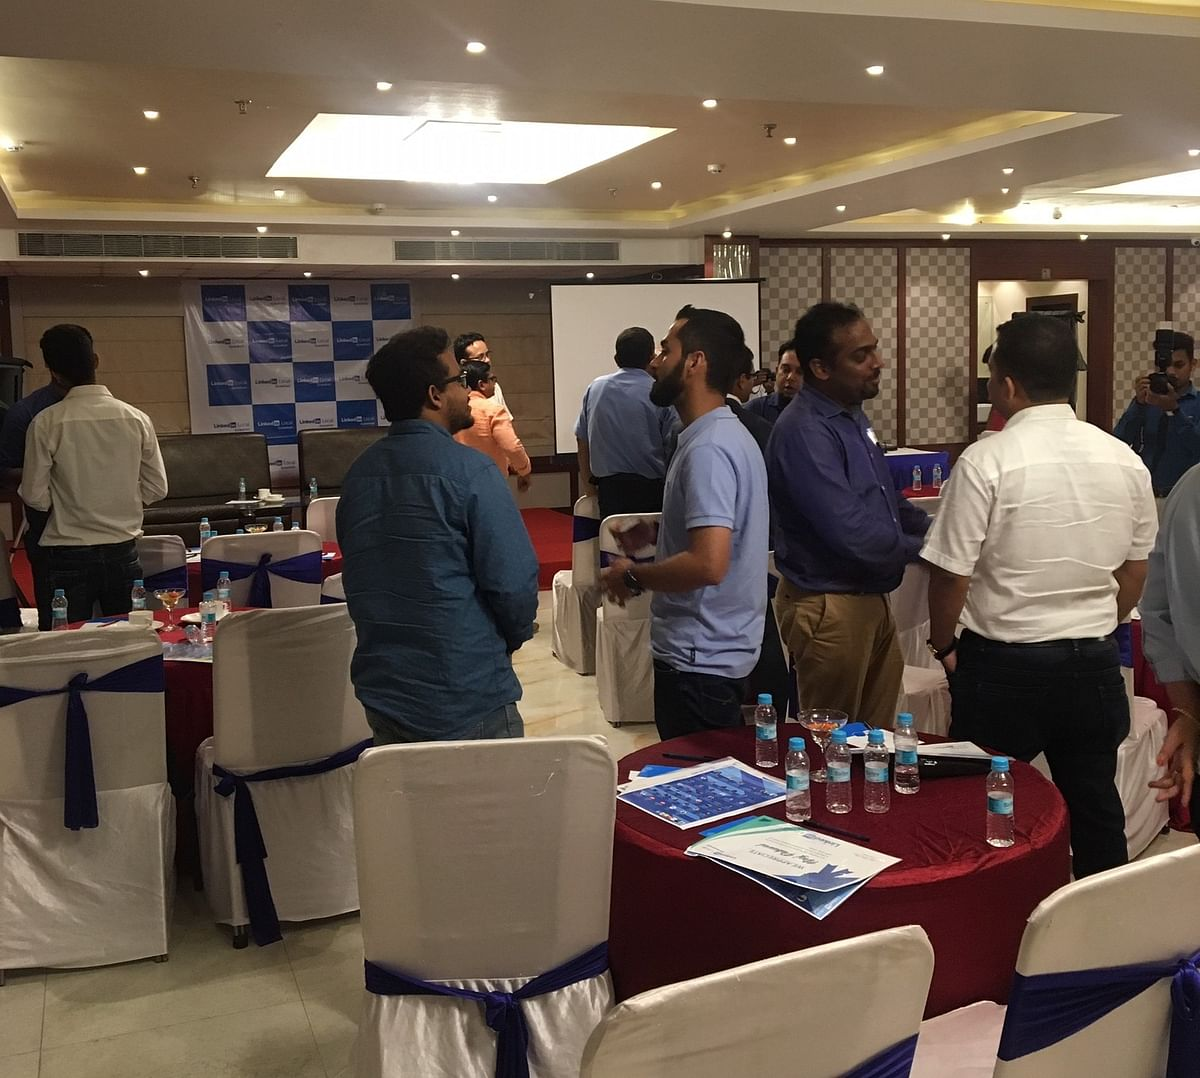 Attendees take part in an open networking session during the LinkedIn Local event in Guwahati, Assam